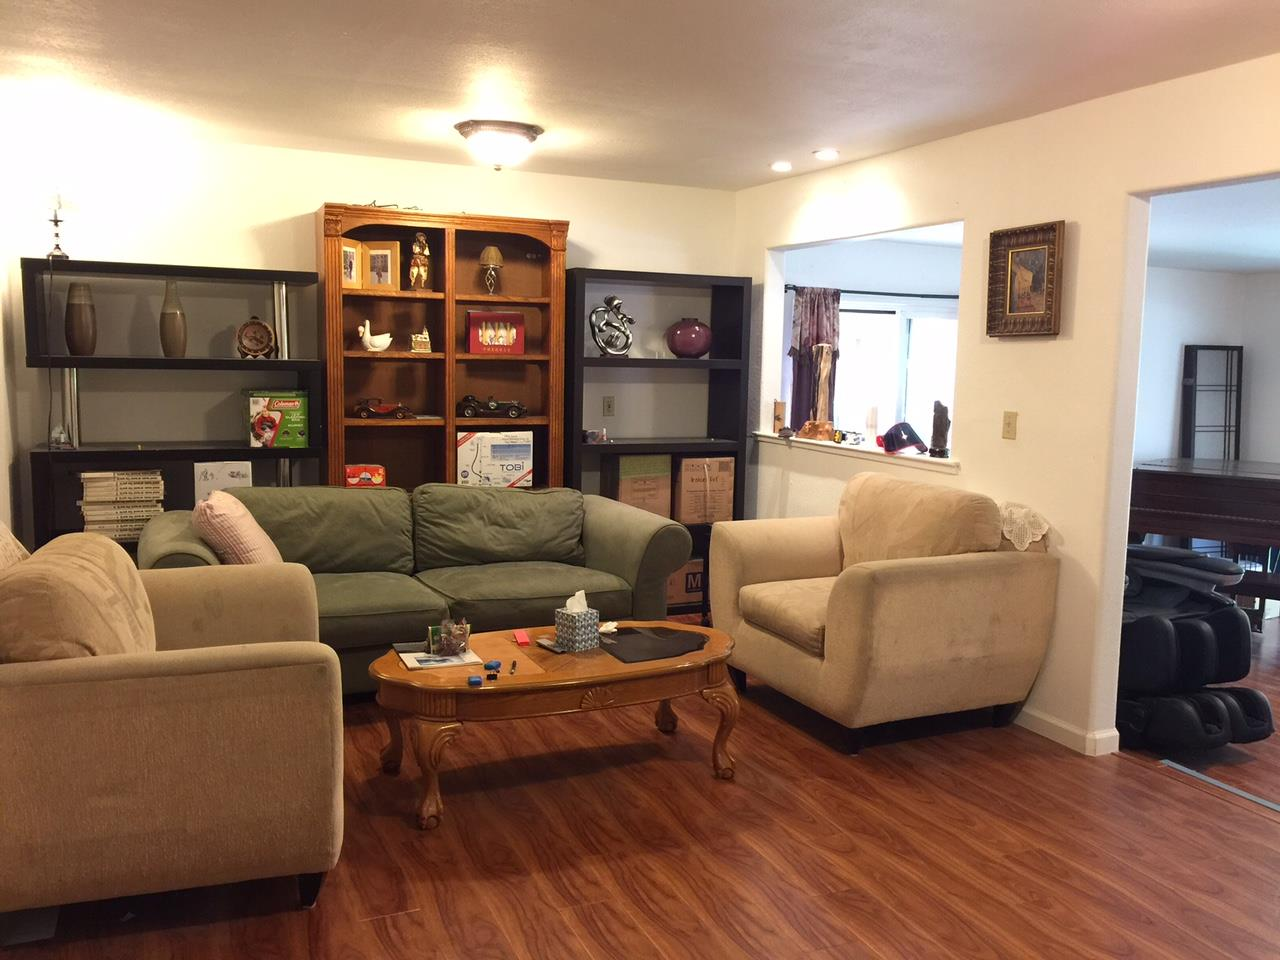 Additional photo for property listing at 3514 Ramstad Drive 3514 Ramstad Drive San Jose, Californie 95127 États-Unis